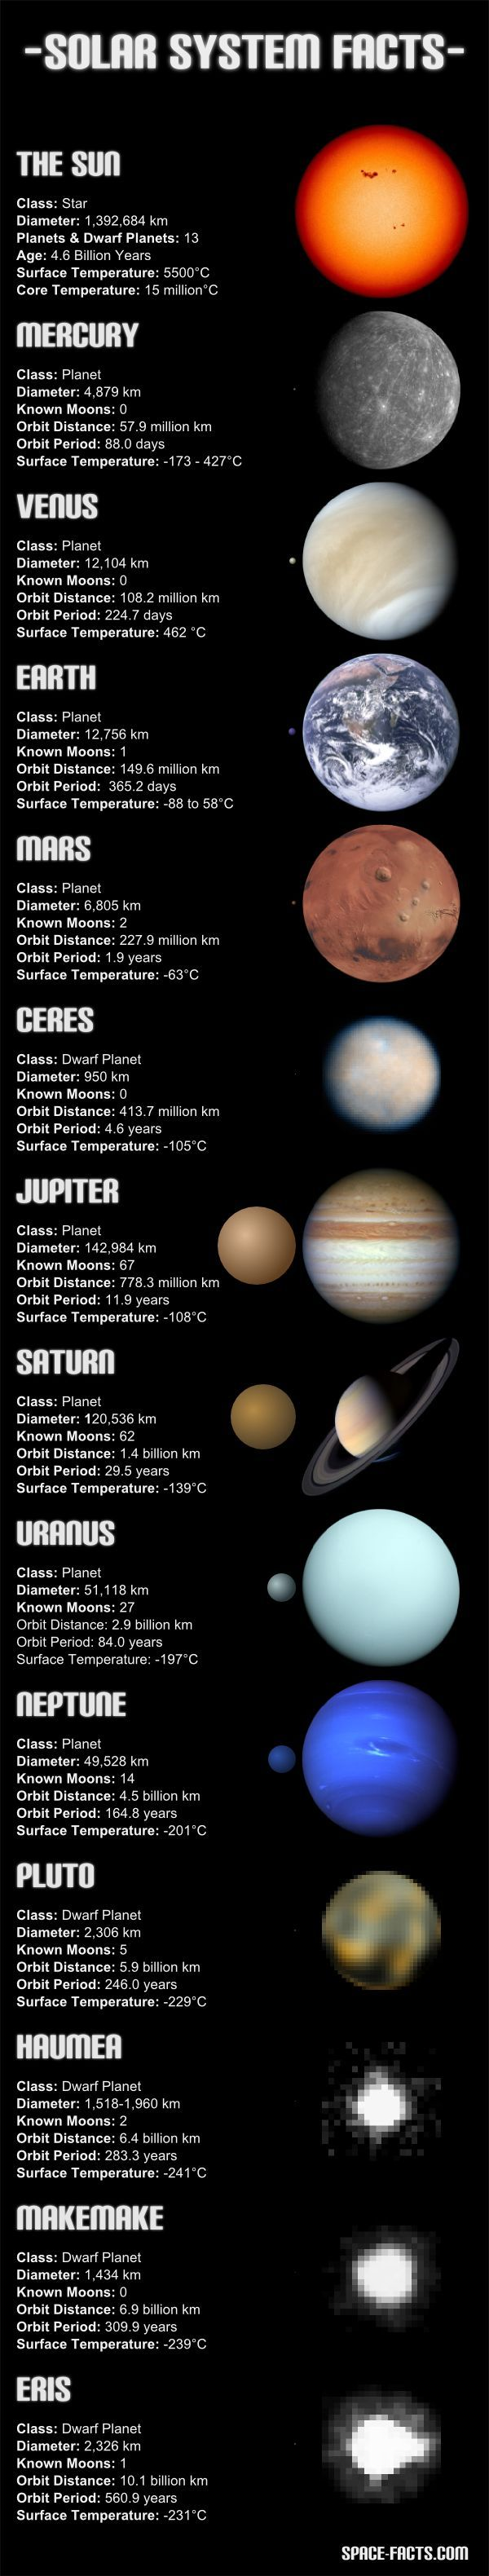 Solar System Planets and Dwarf Planets | INFO | Solar system